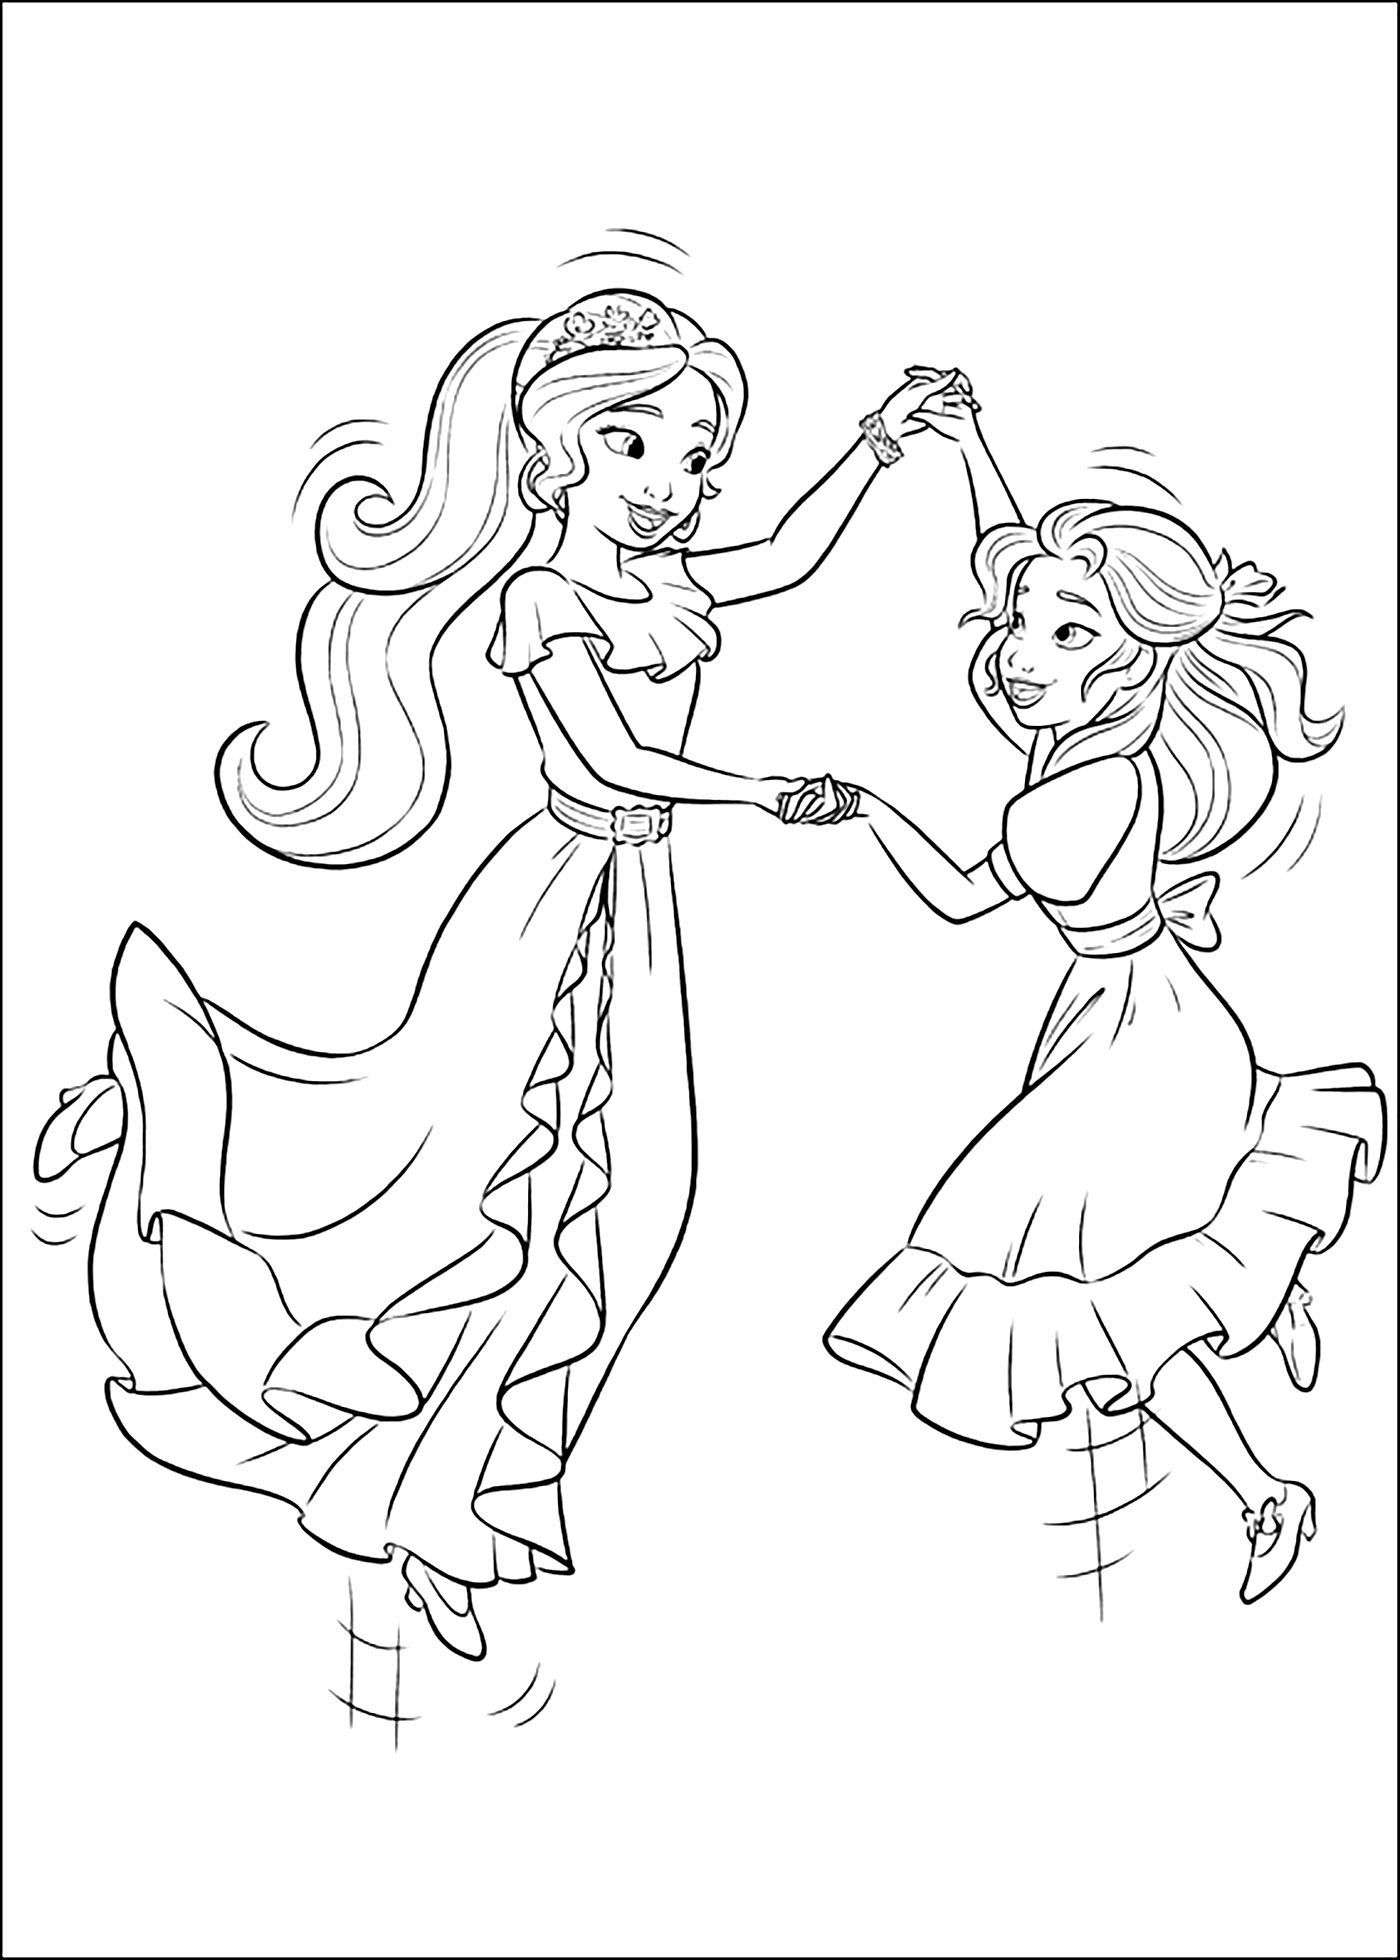 princess elena coloring pages 16 elena with her staff coloring page princess coloring elena coloring princess pages